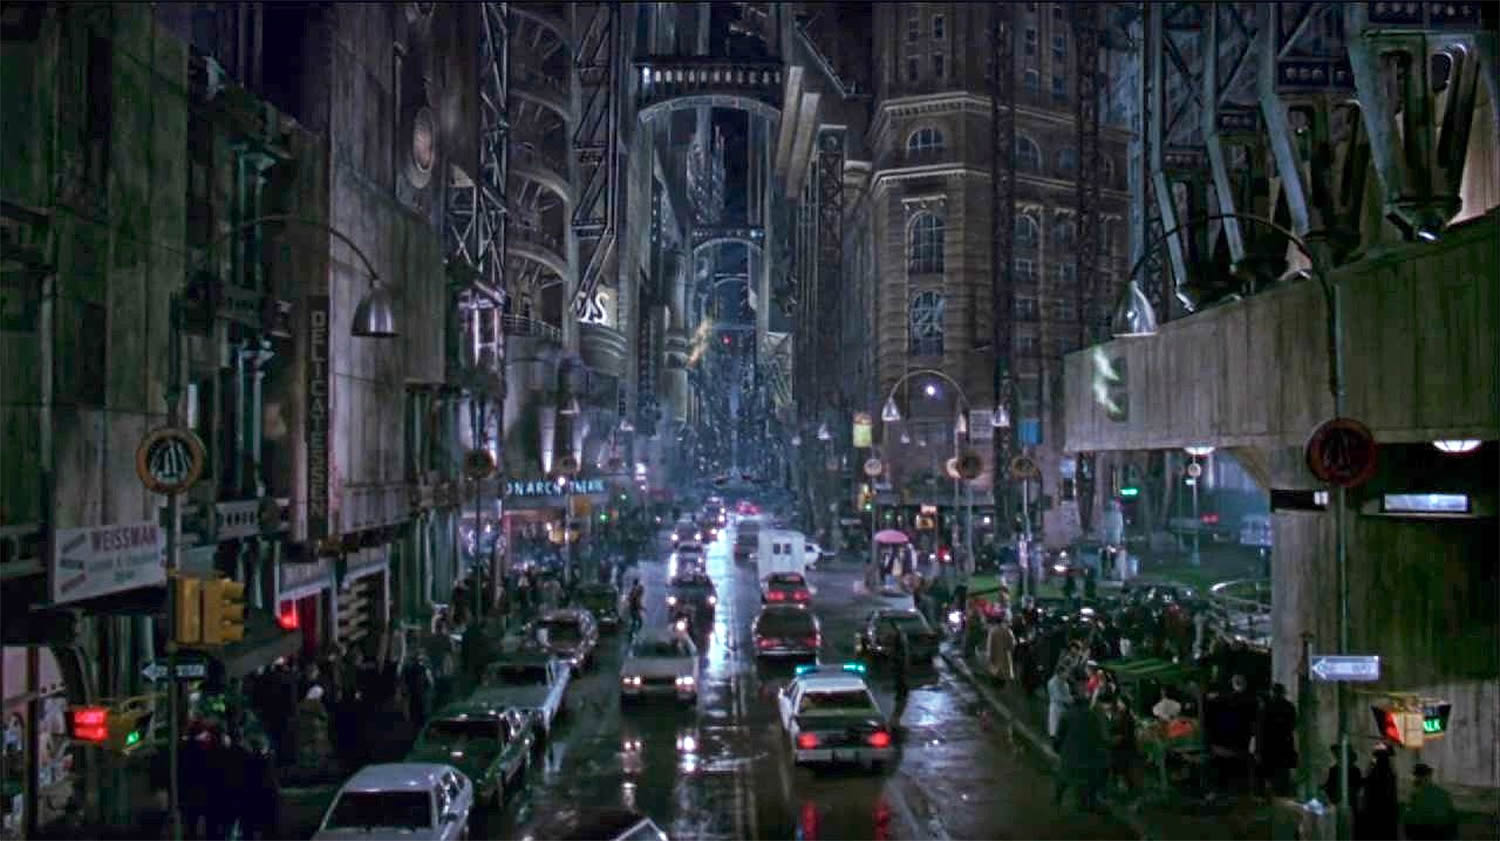 gotham city in batman returns. german expressionism influence, metropolisa